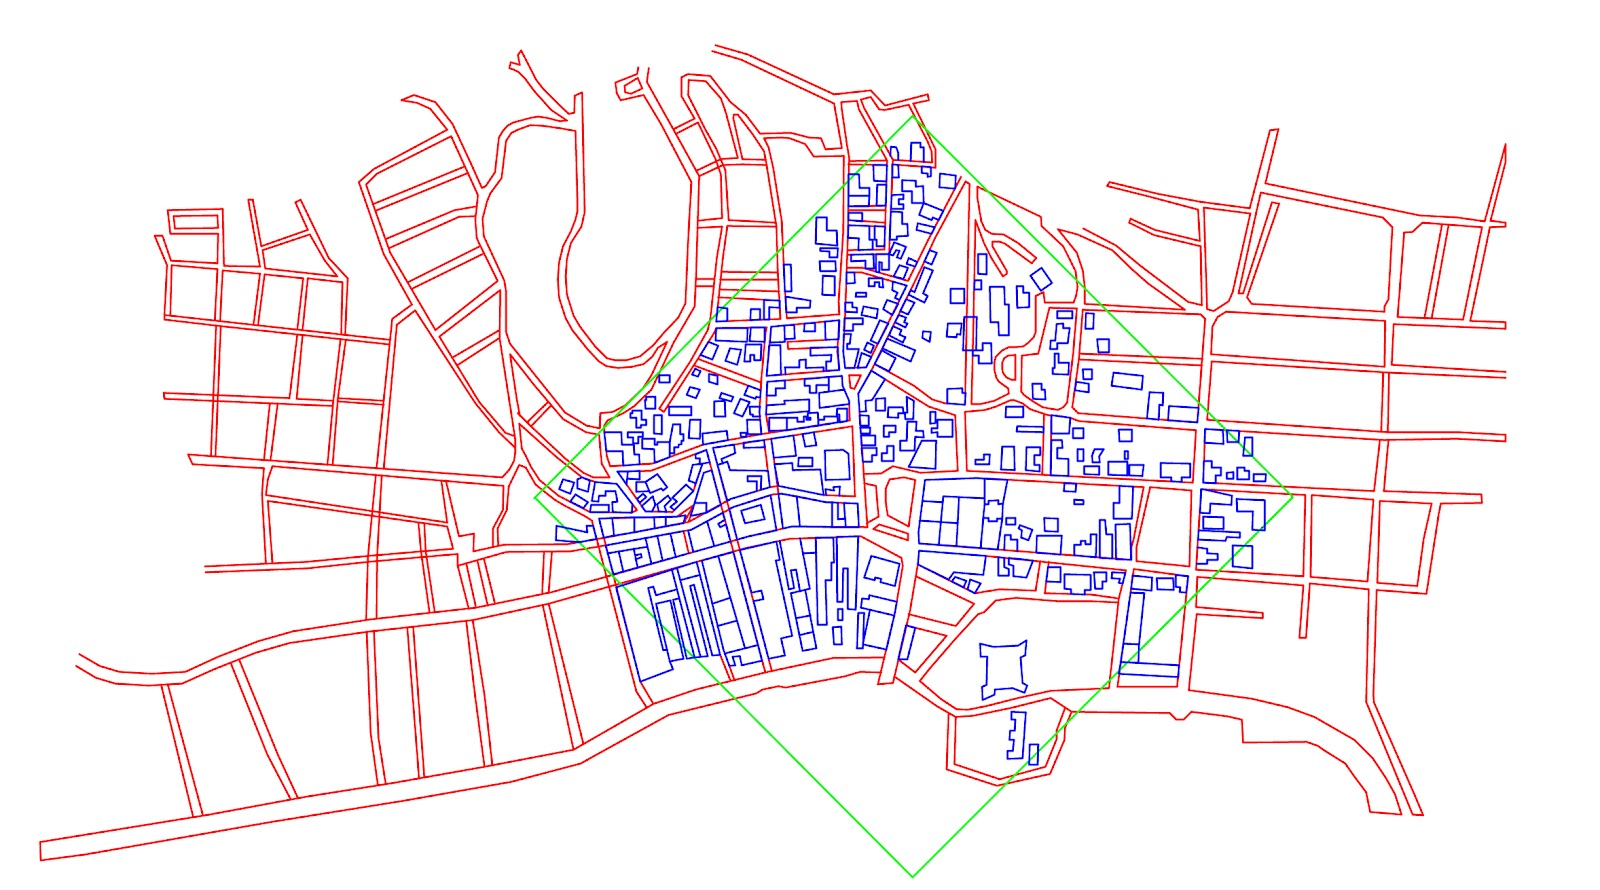 this is the most recent map from 2010 and shows the streets have been further densified this map also shows all of the buildings within the area that we